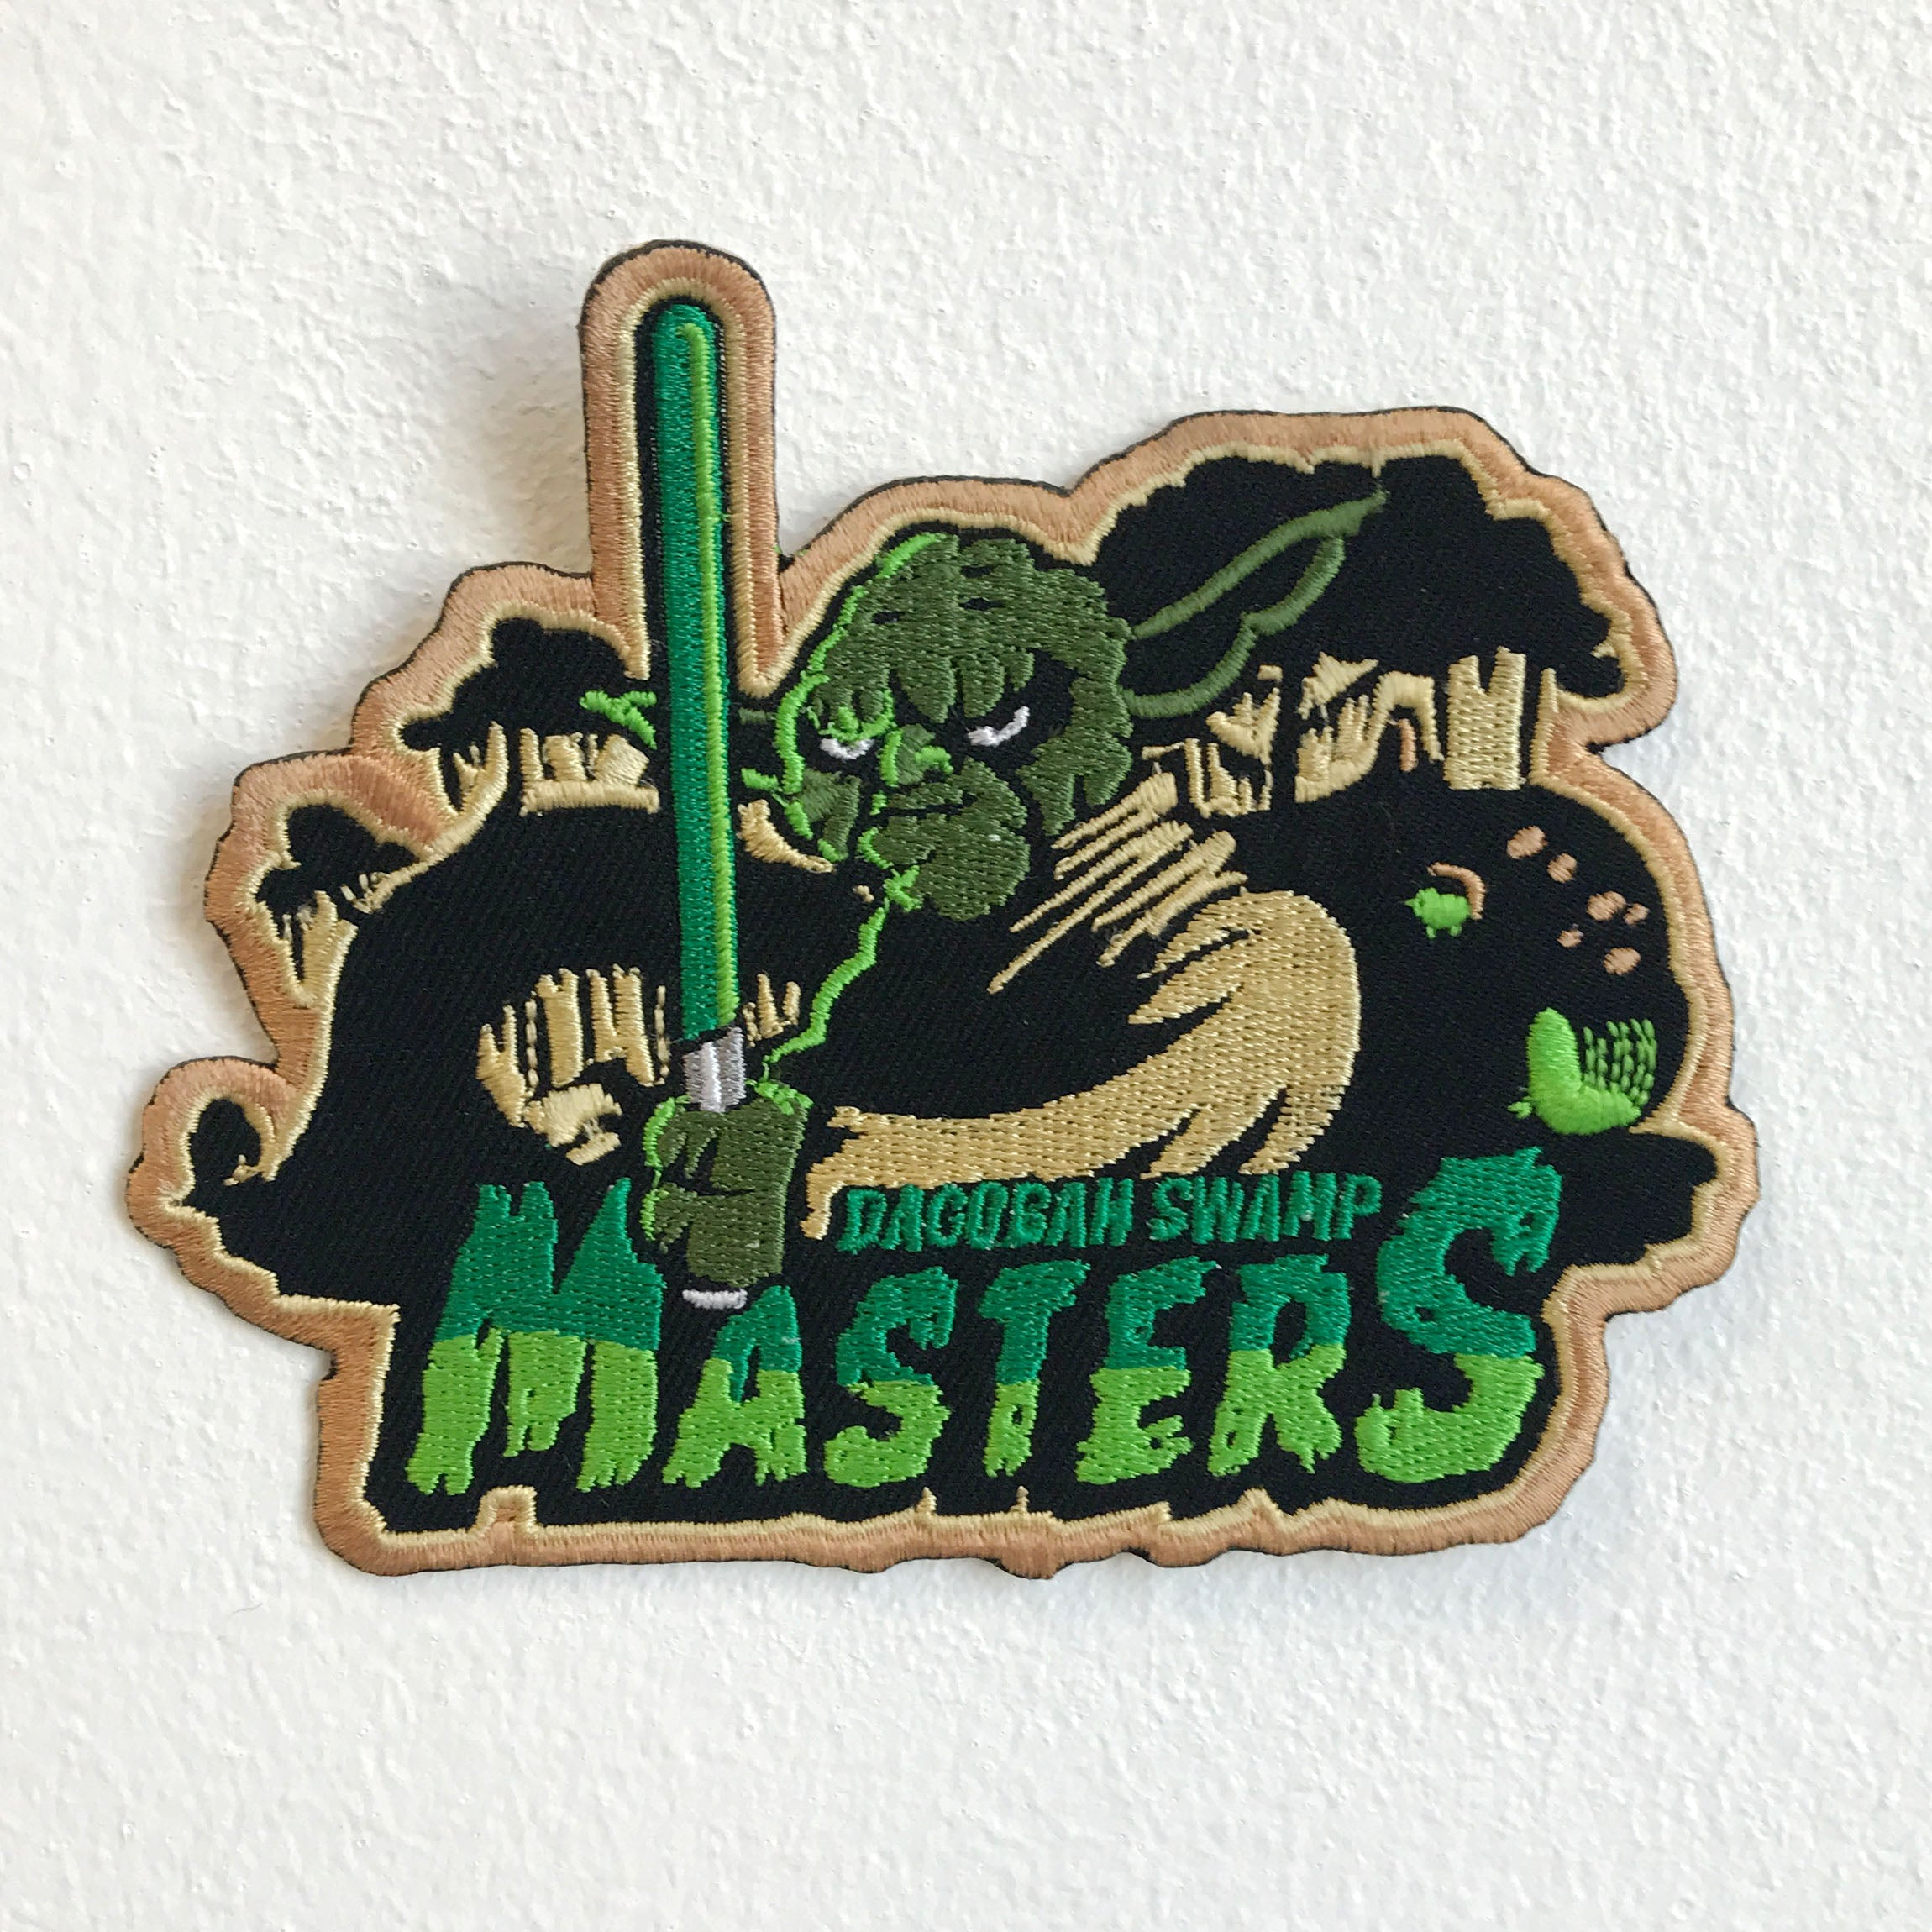 Dagobah Swamp Monster Star Wars Iron Sew on Embroidered Patch